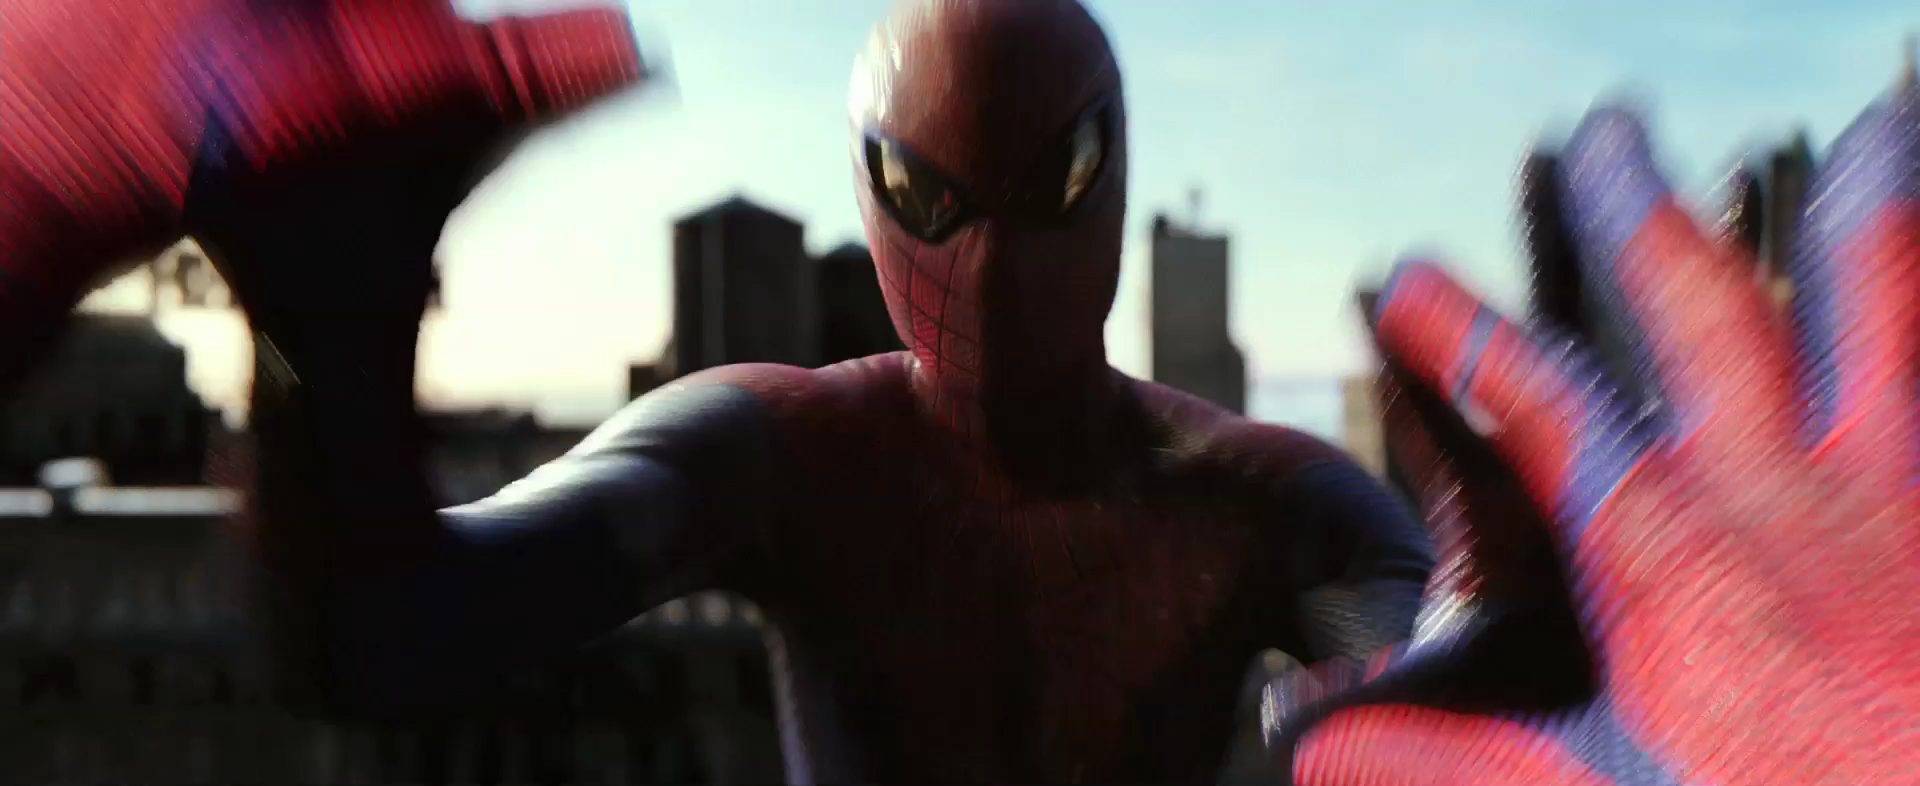 http://images4.fanpop.com/image/photos/23900000/The-Amazing-Spider-Man-Teaser-Trailer-spider-man-23963880-1920-786.jpg